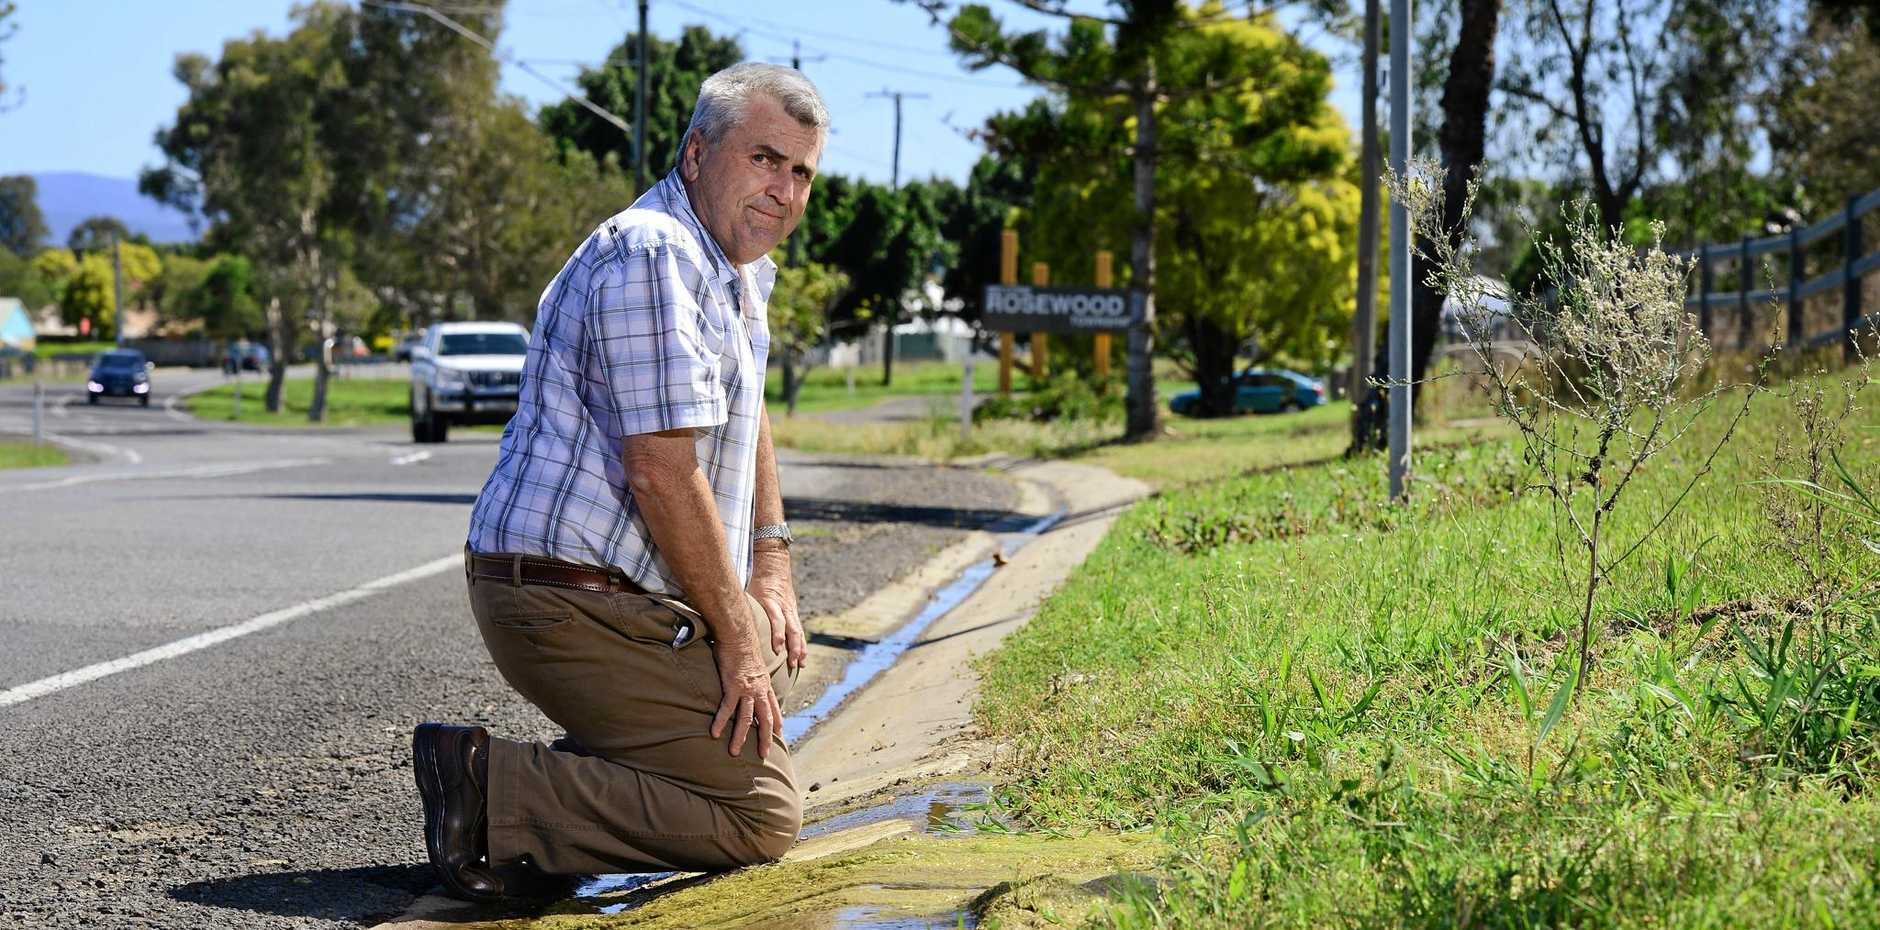 ROAD DAMAGE: Cr David Pahlke watches on as water from a nearby spring drains onto Karrabin Rosewood Rd at Rosewood. He is worried the long-term leak will cause damage to the well-used road.